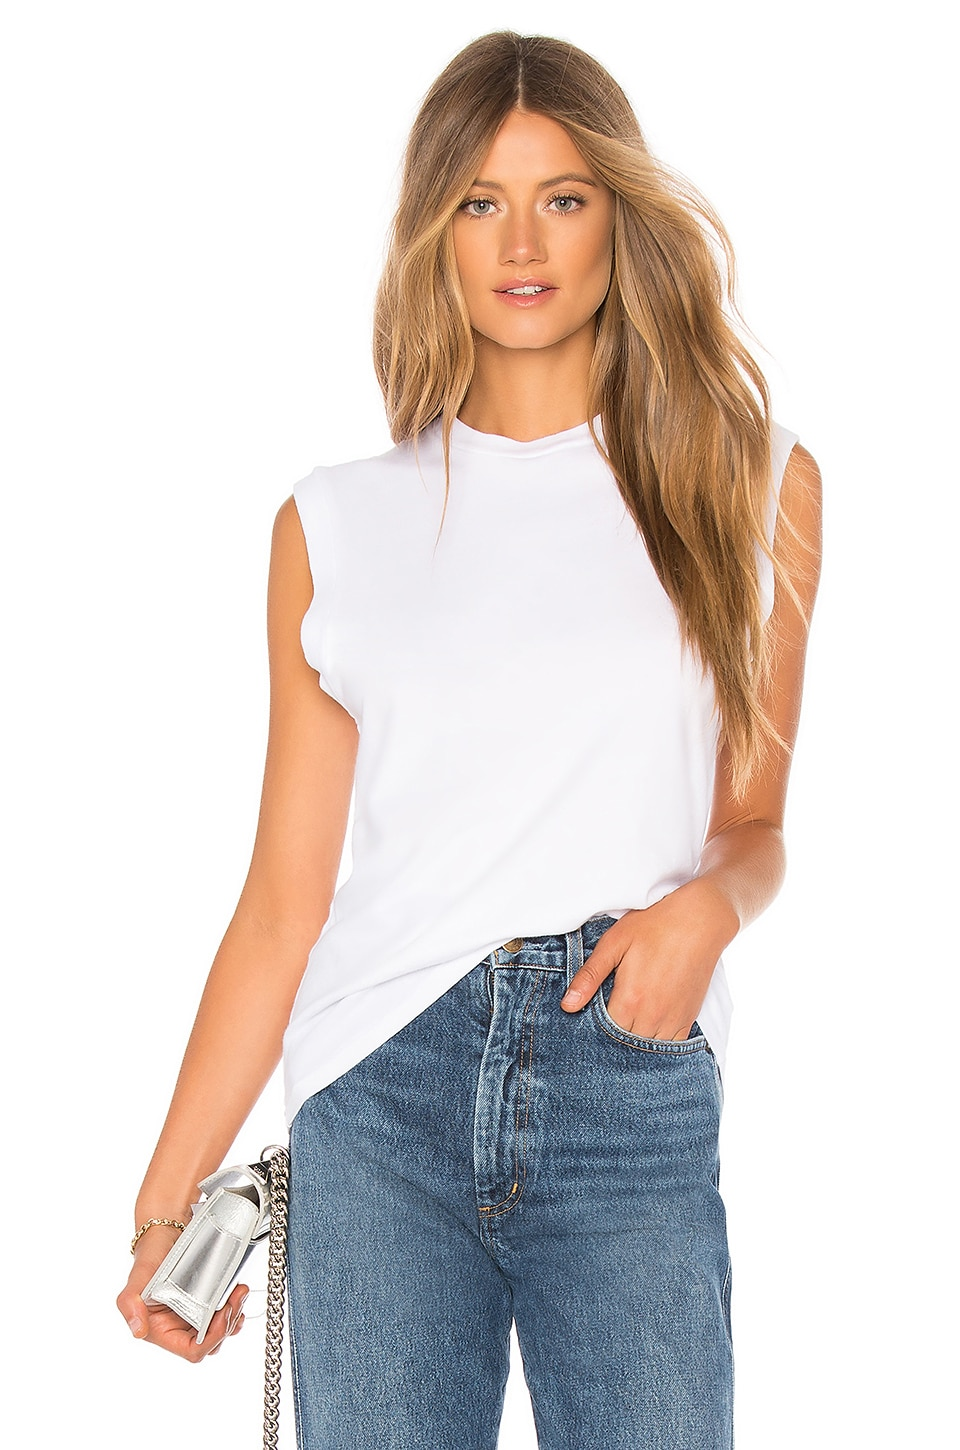 Muscle Tee             AGOLDE                                                                                                                                         Sale price:                                                                       CA$ 48.34                                                                                                  Previous price:                                                                       CA$ 82.47 2